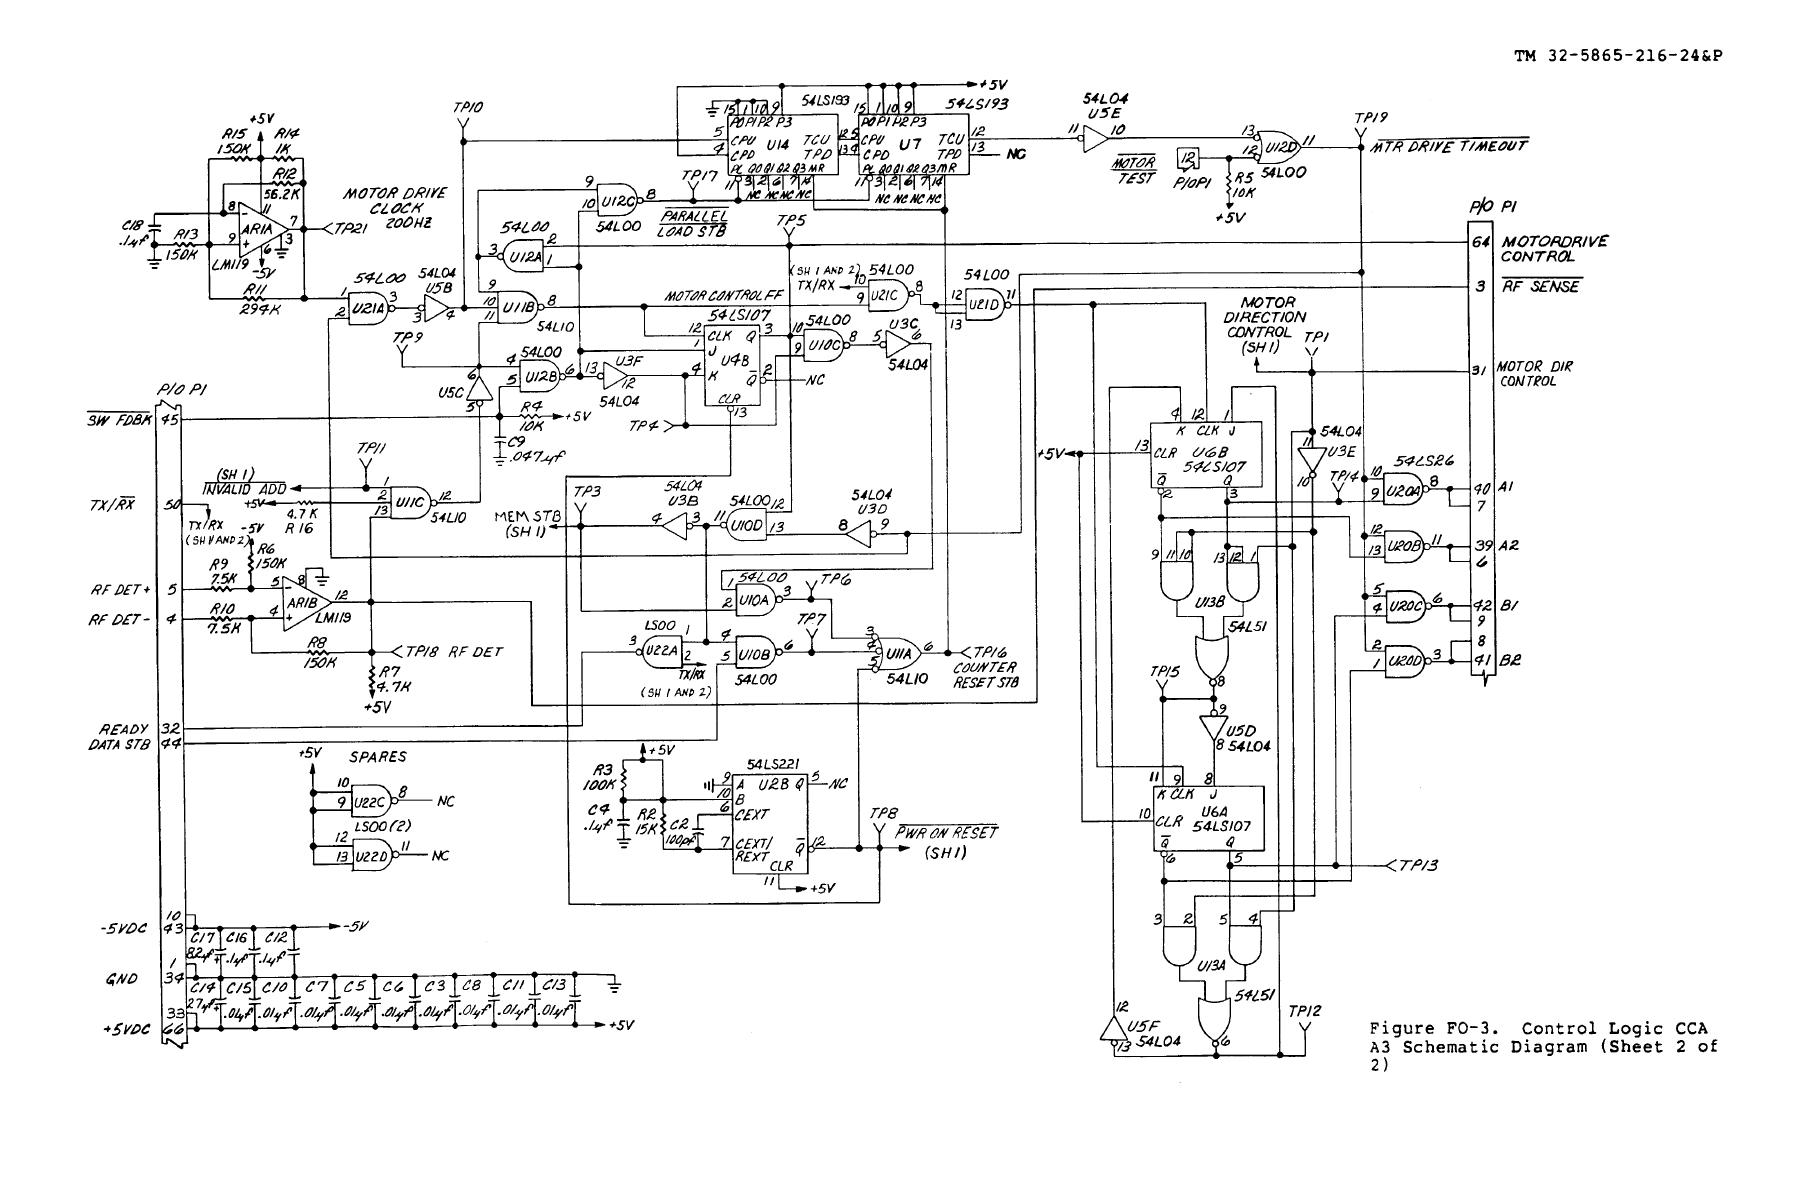 Logic Diagram And Or Great Design Of Wiring Circuit Diagrams Aviation Get Free Image About Boolean